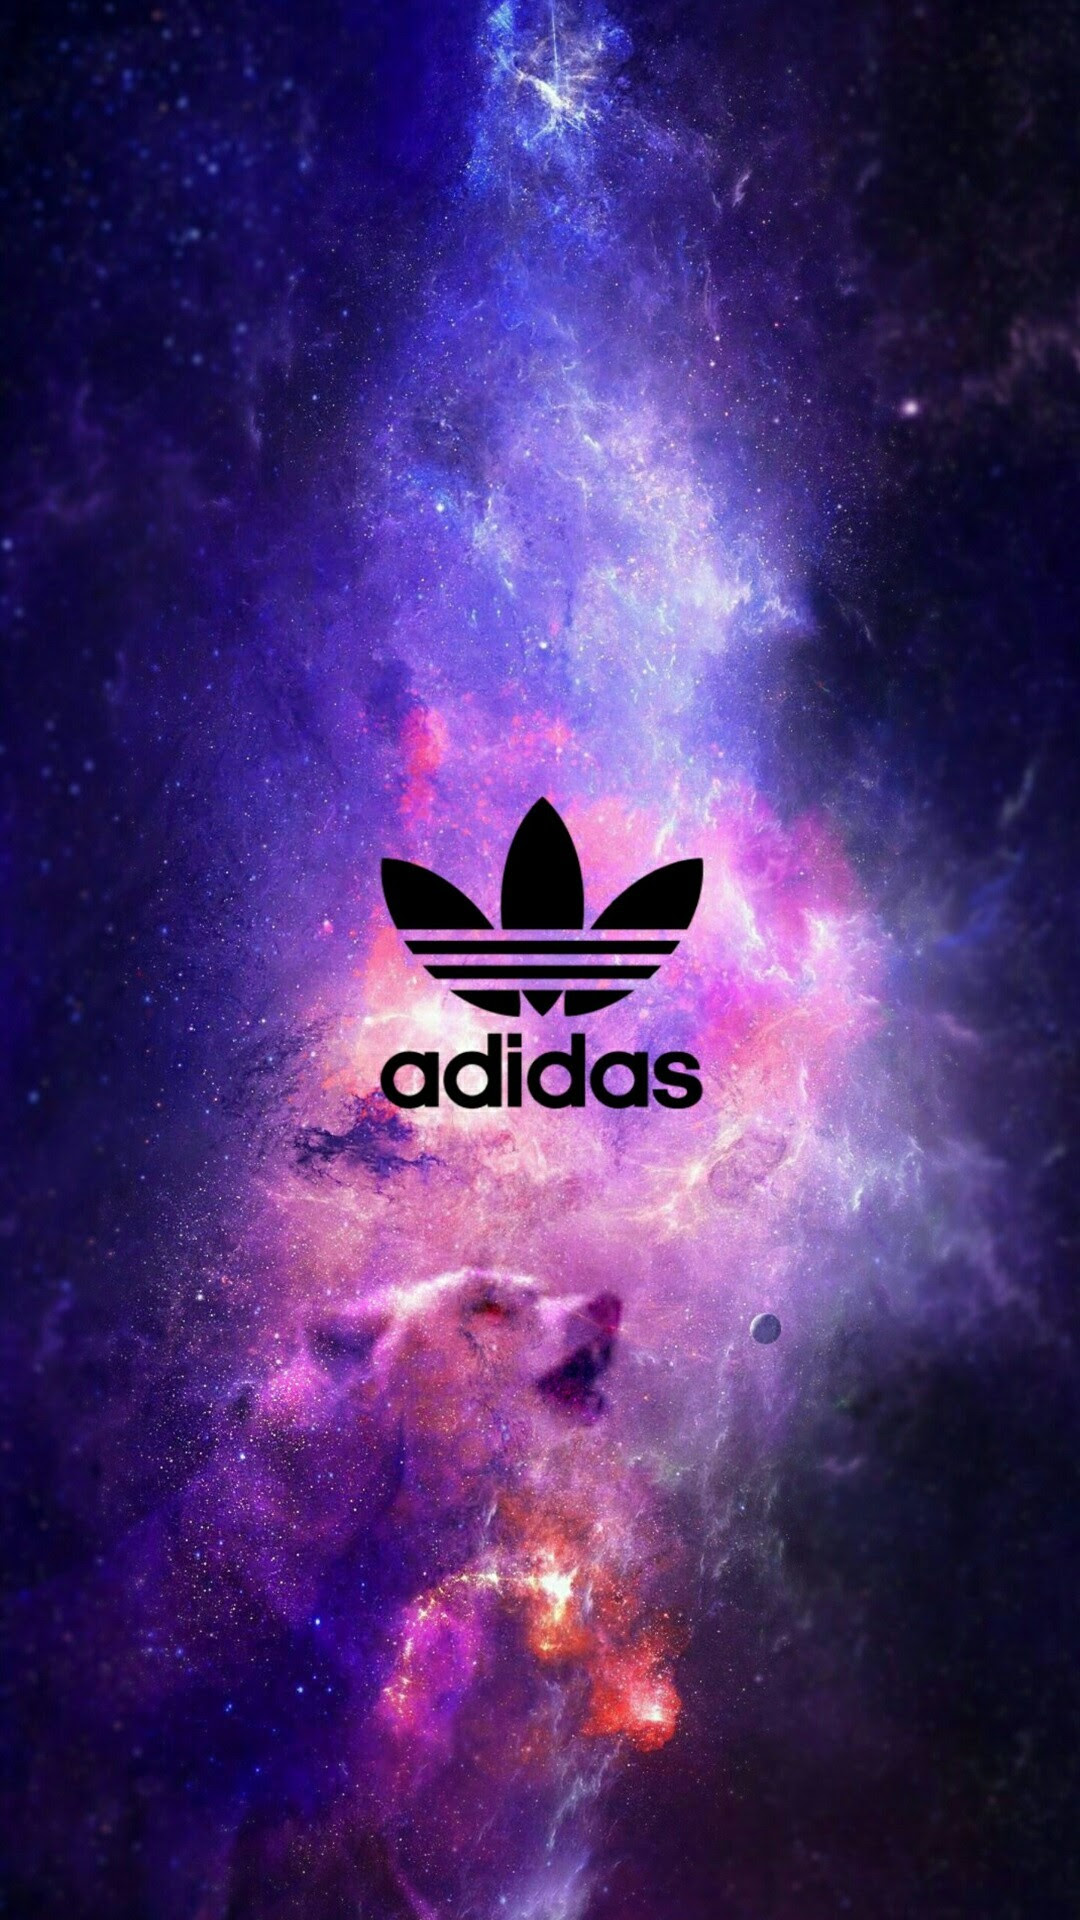 Adidas iPhone Wallpaper (72  images)